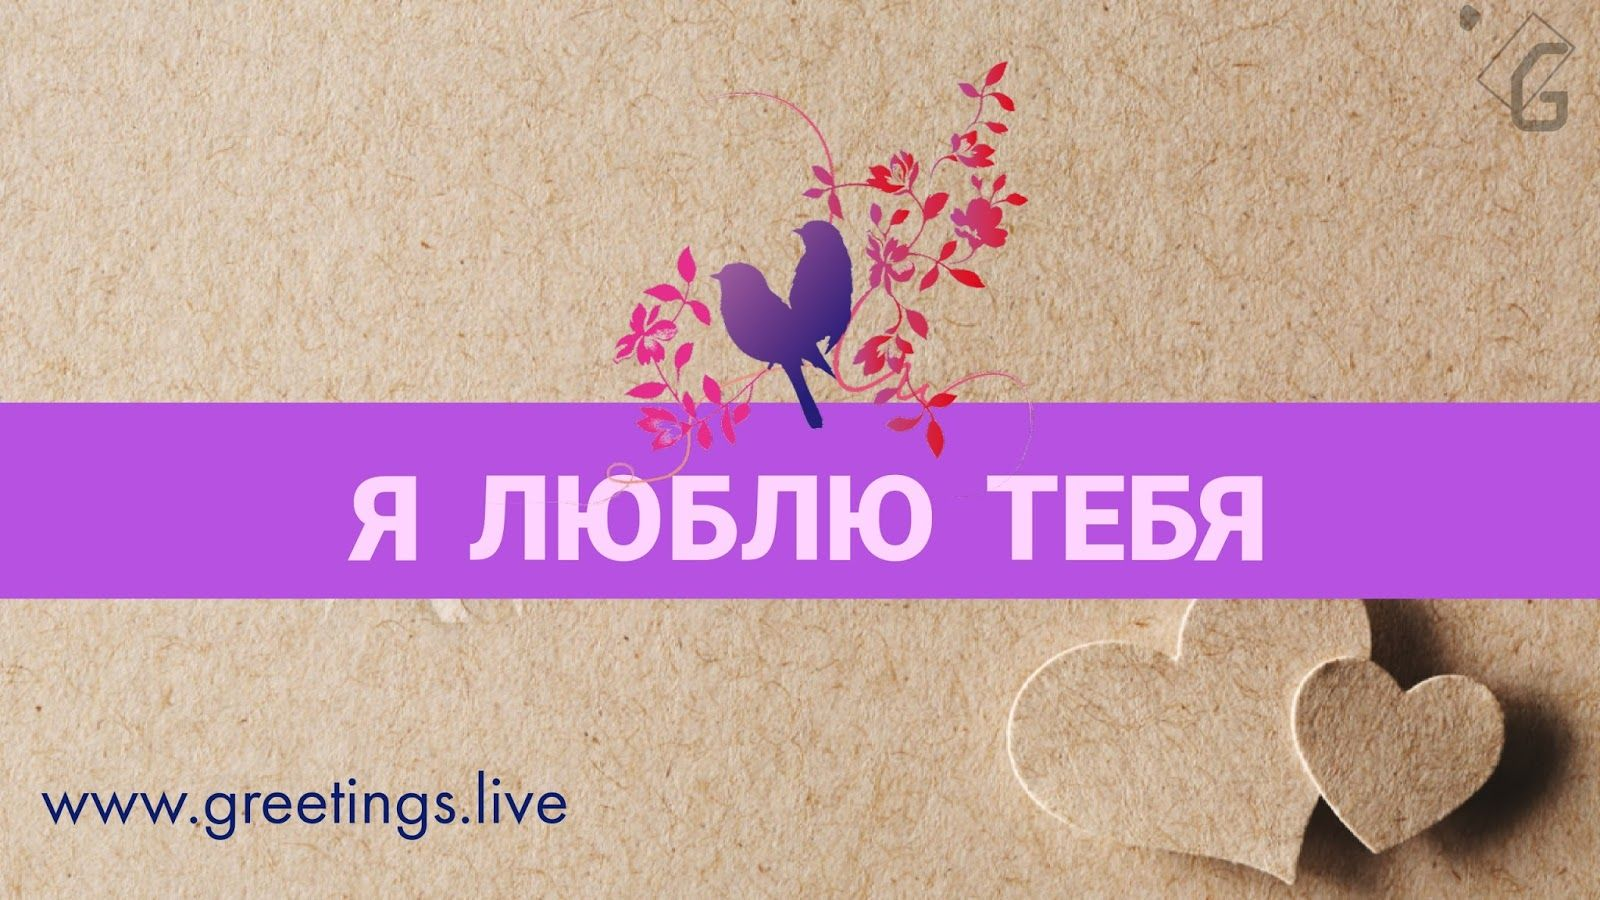 Russian Love Greetings Live 2018 Russian Things